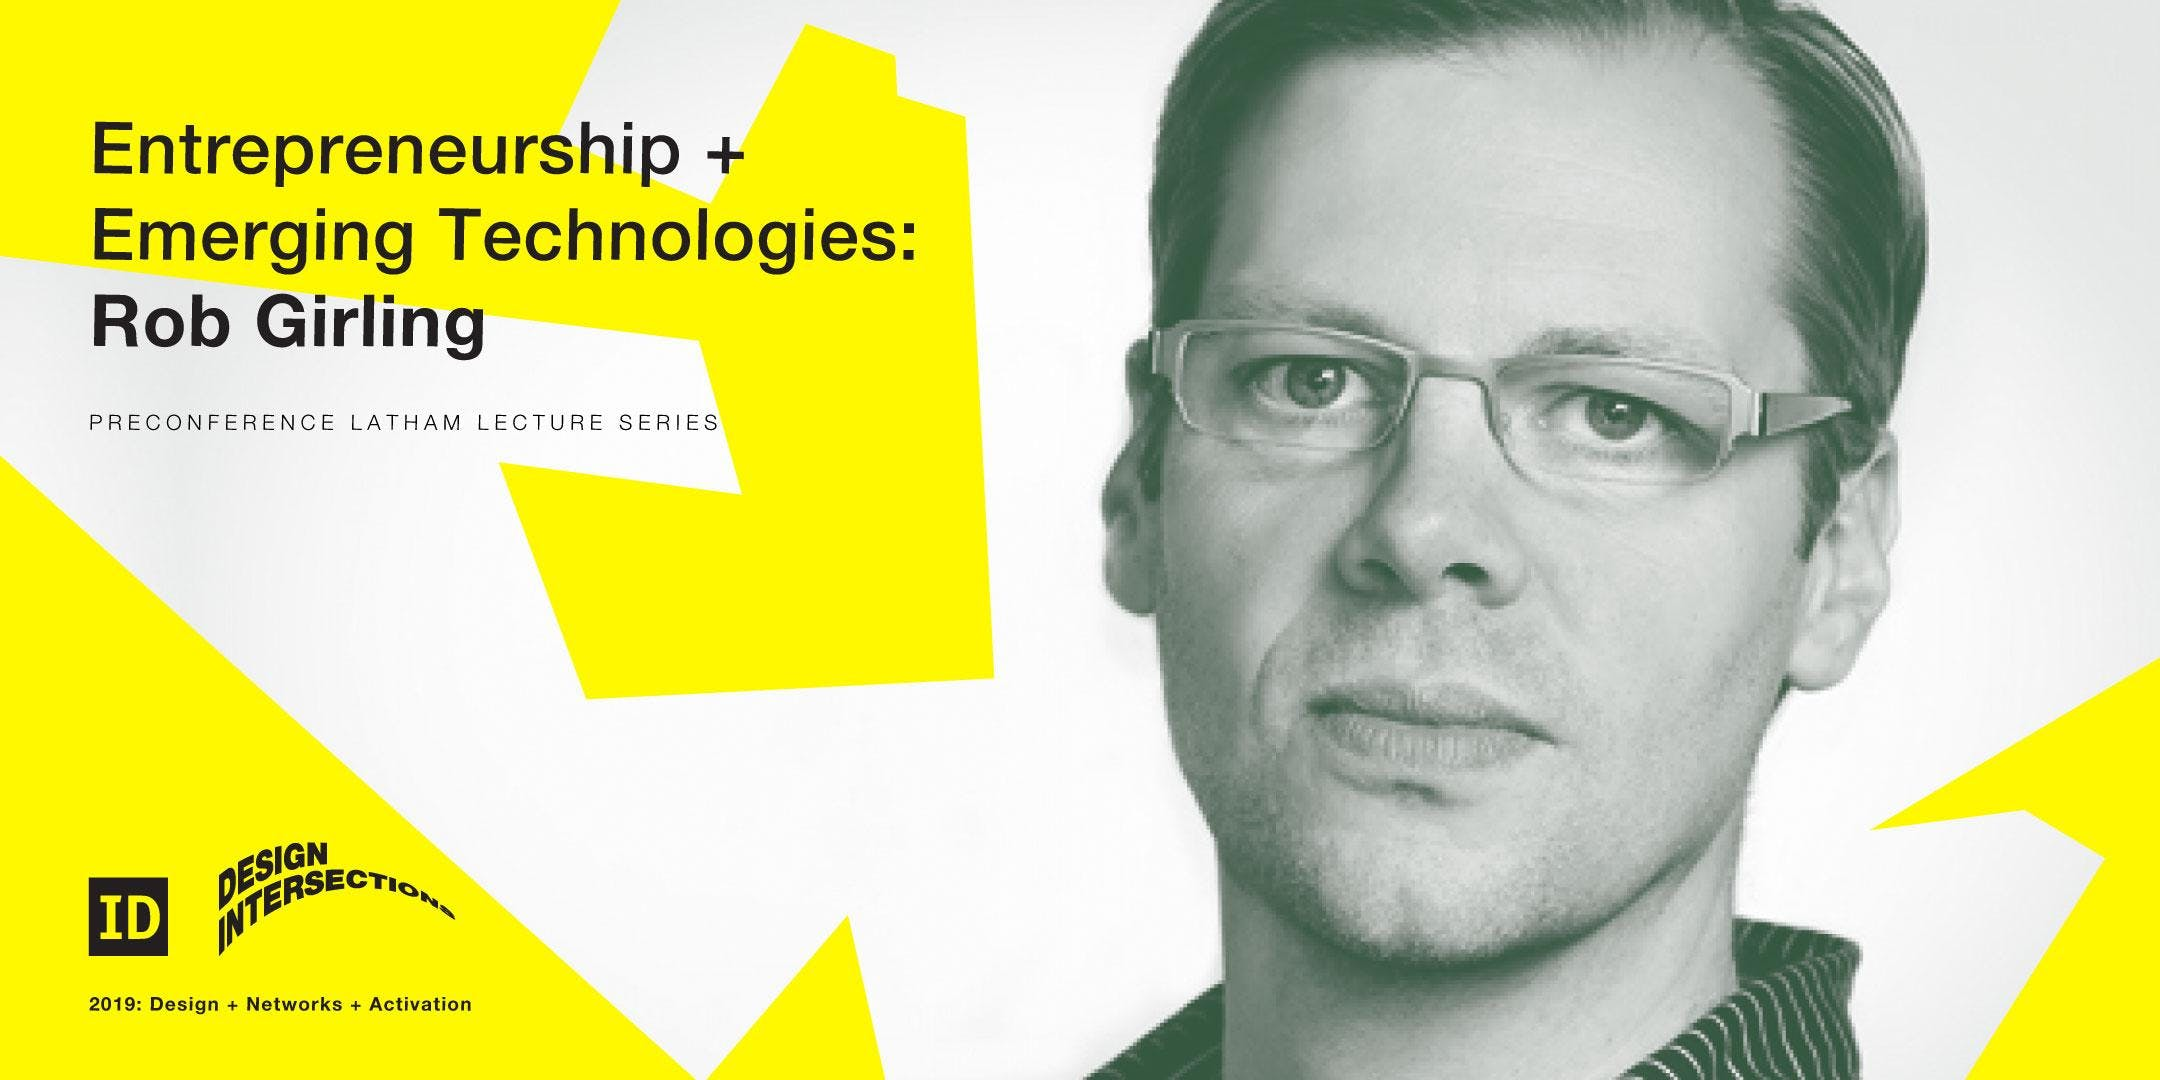 Entrepreneurship + Emerging Technologies: Rob Girling